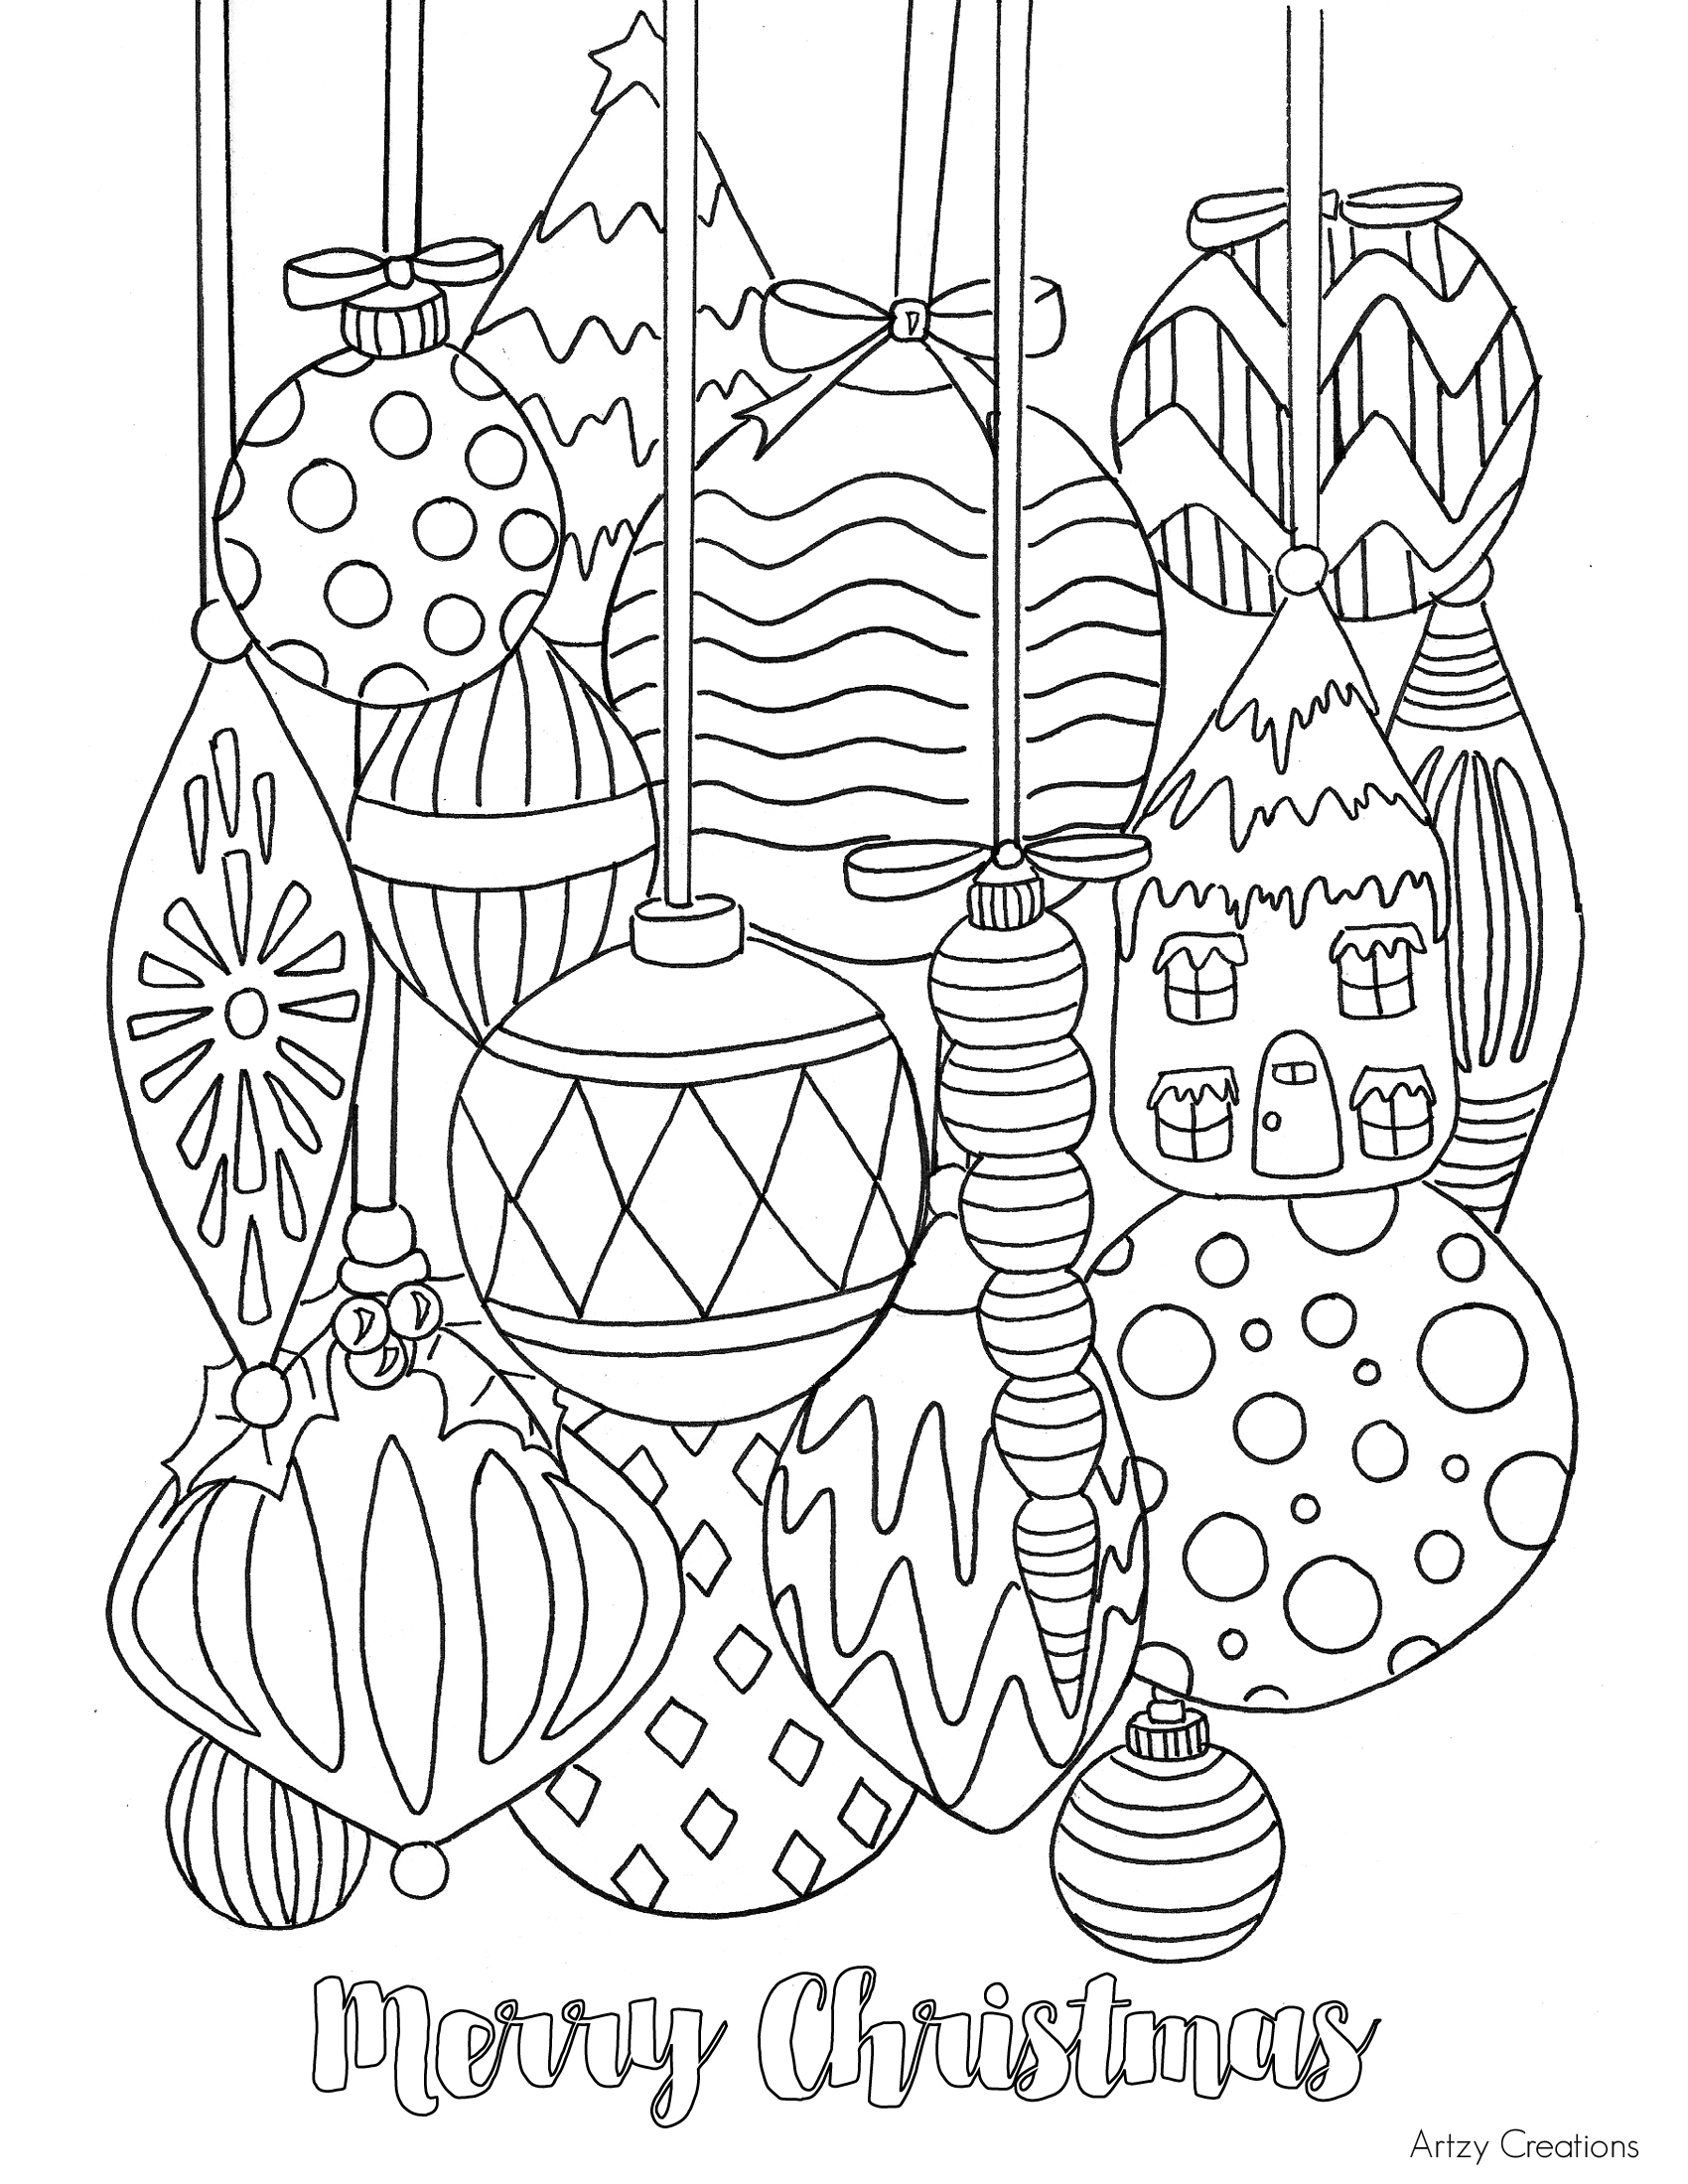 Christmas Images Coloring Pages With Free Ornament Page TGIF This Grandma Is Fun